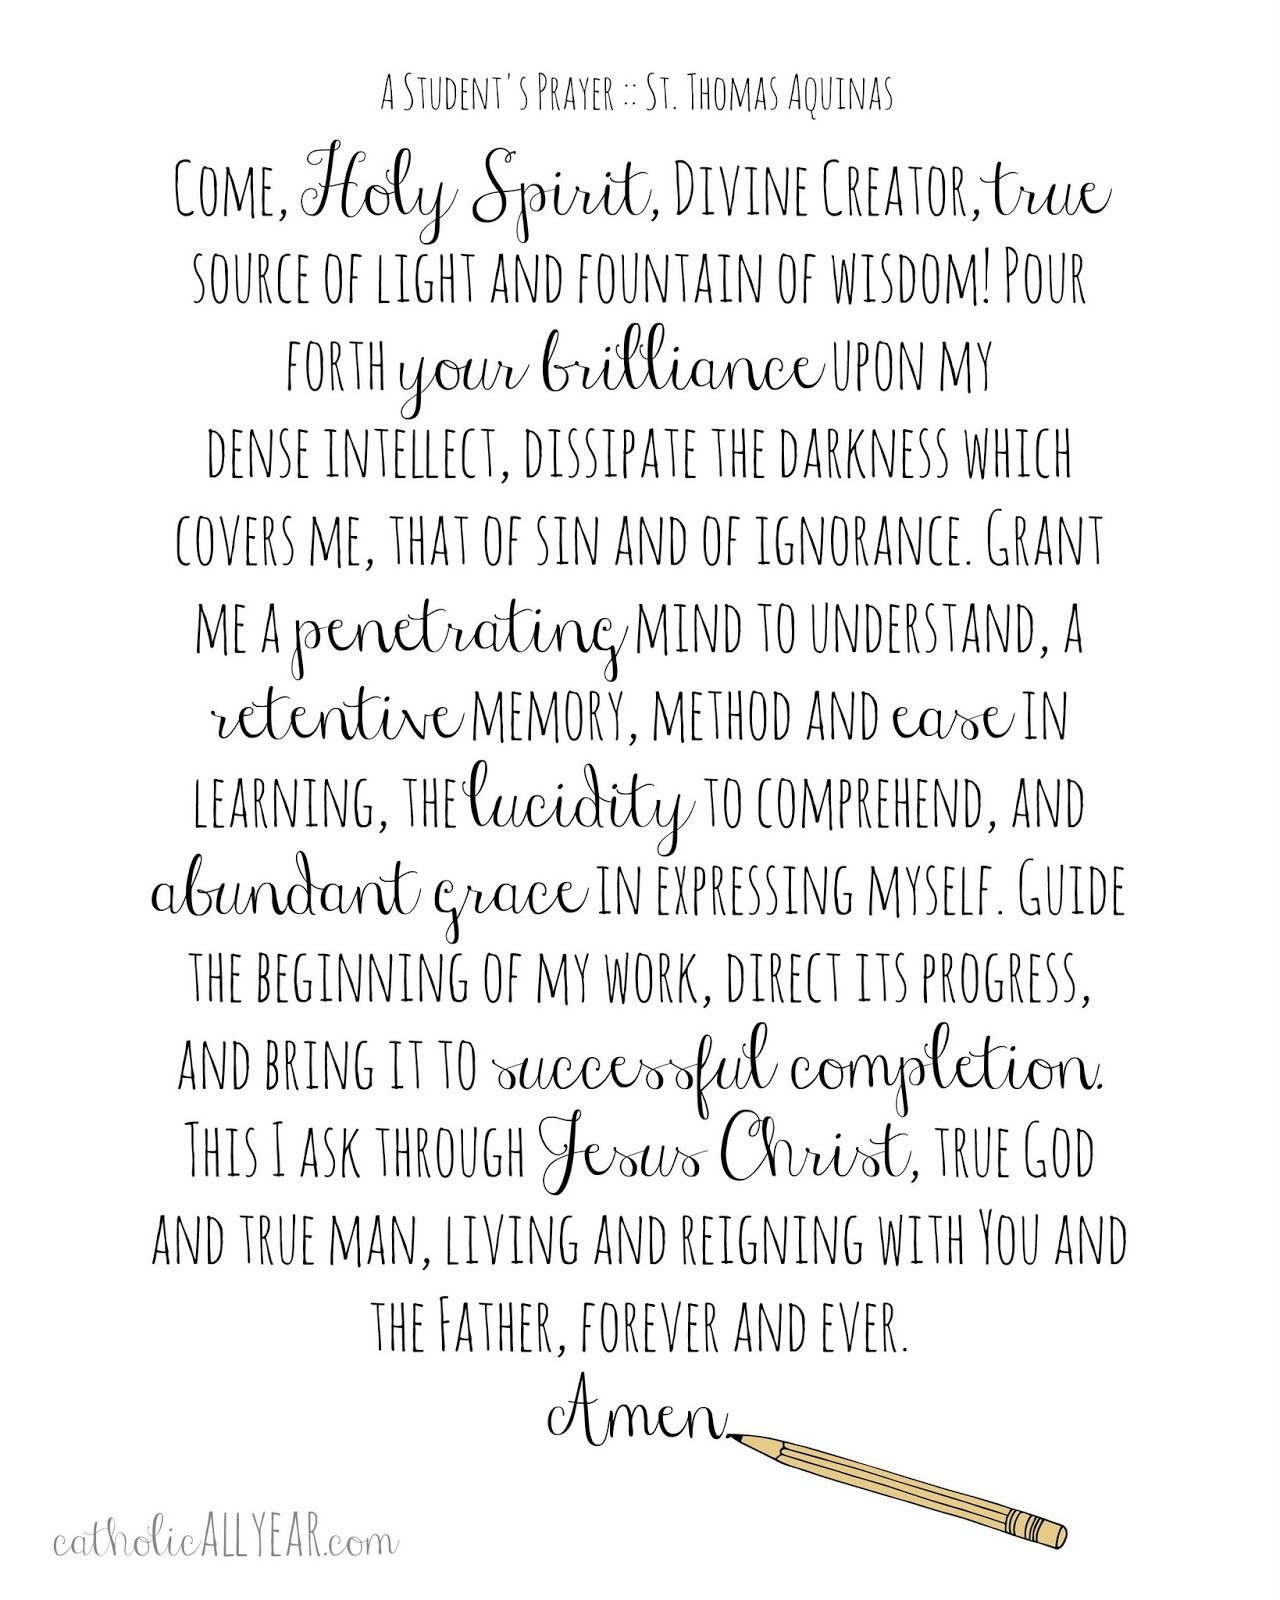 Catholic All Year A Student S Prayer Free Printable St Thomas Aquinas Quote Education